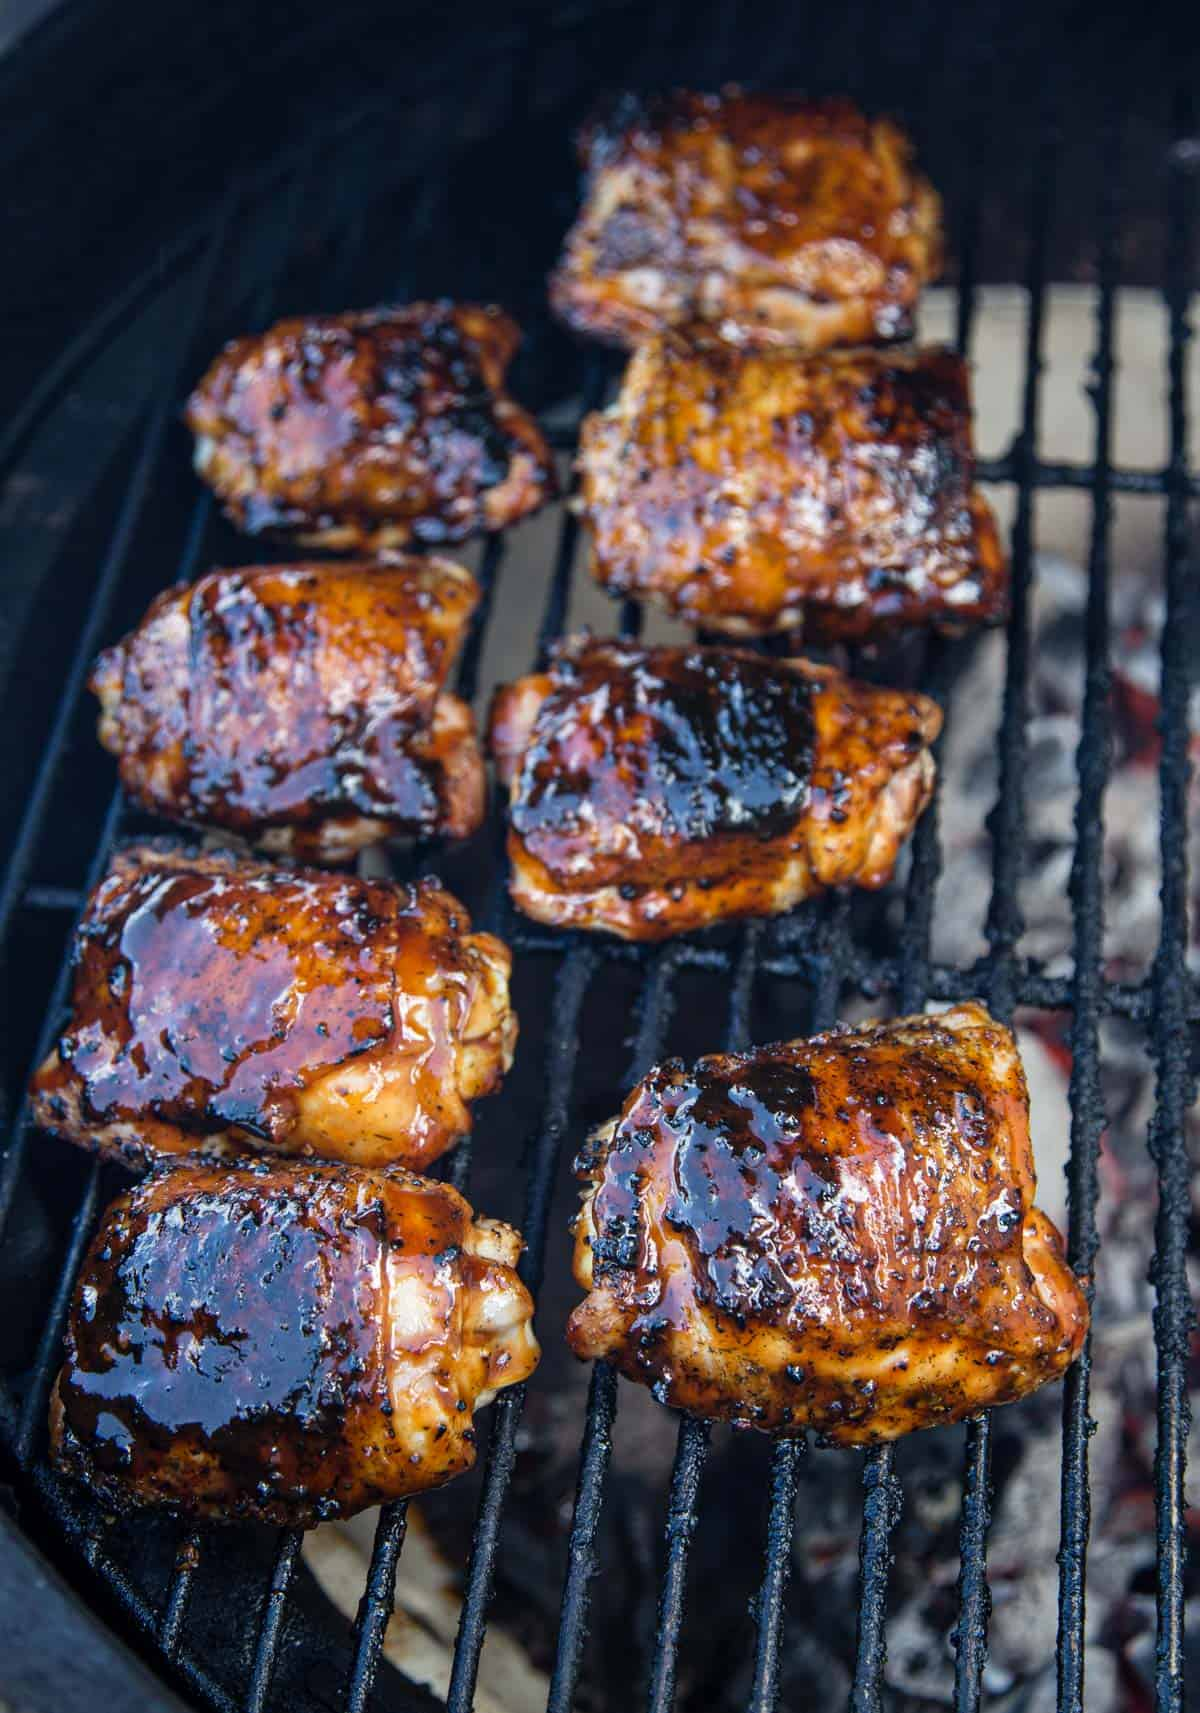 Chicken Thighs being cooked over indirect heat on a Big Green Egg grill